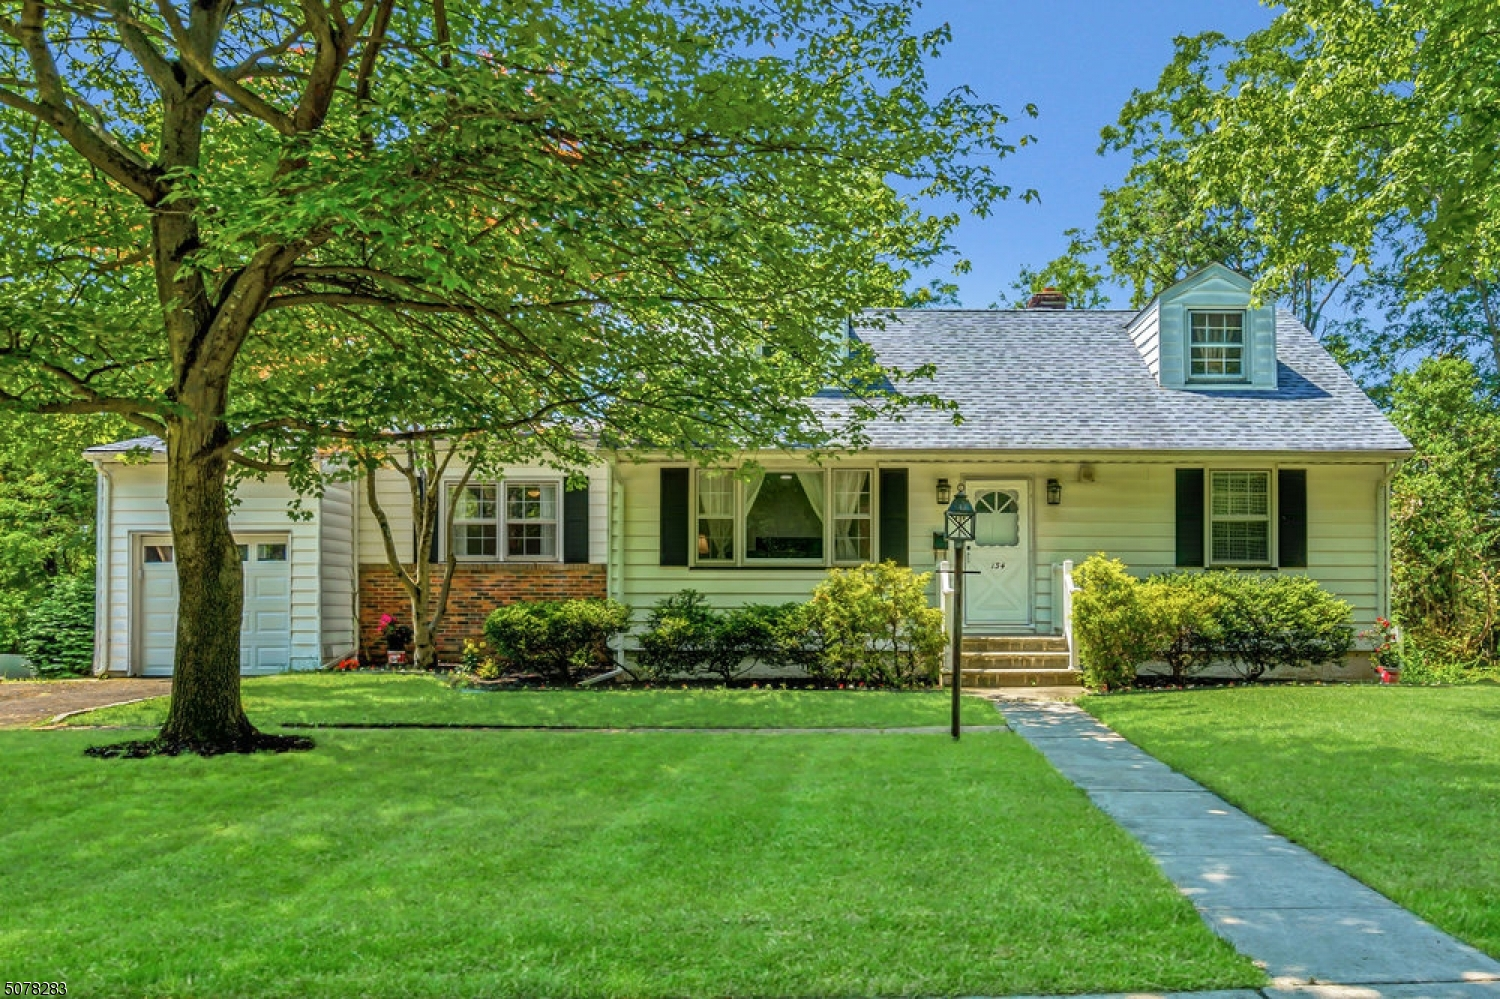 Welcome to this Sun Filled Home! Beautifully refinished w/ room for all. Short distance to NYC Direct Train. Millburn is known for its Top Rated Schools/Quaint Downtown/Shopping/Great Restaurants & Picturesque parks. All new Baths. New Furnace & Central Air. New electric panel-All new smart lighting. New Garage Door/Vinyl fencing/Appliances. So easy to maintain. The first floor offers great flow, w/ Large Living Room& Dining Room, Eat In Kitchen, Two Large Bedrooms, Full Bath & Sweet enclosed Porch leading to Garage & Yard. Upstairs are 2 additional Bedrooms & Another Full Bath. The lower level has a Fantastic Rec Room/Exercise Area/Laundry Area/Workshop and Large Storage/Work-Office space. Walk out to Yard. This home has so much to offer, stop by for a visit soon.